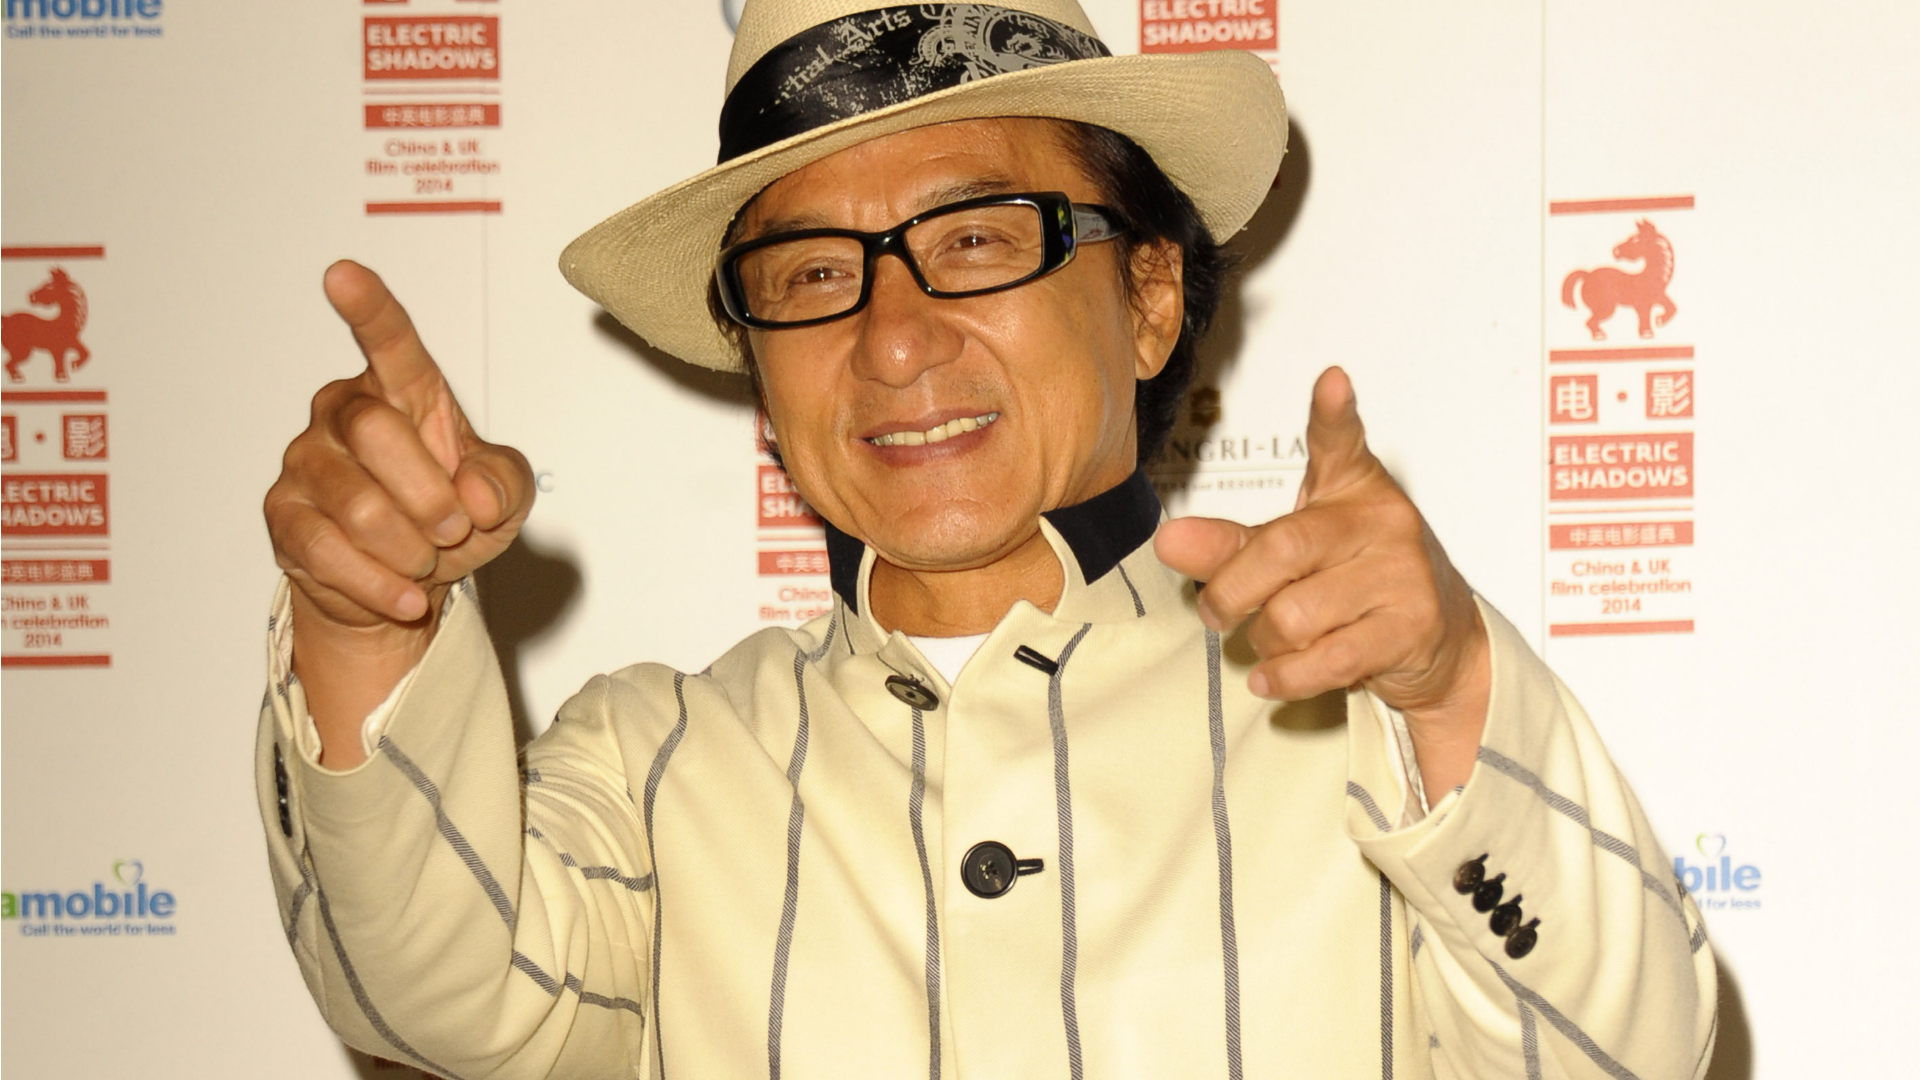 Jackie Chan opens up about his disappointment in son's arrest